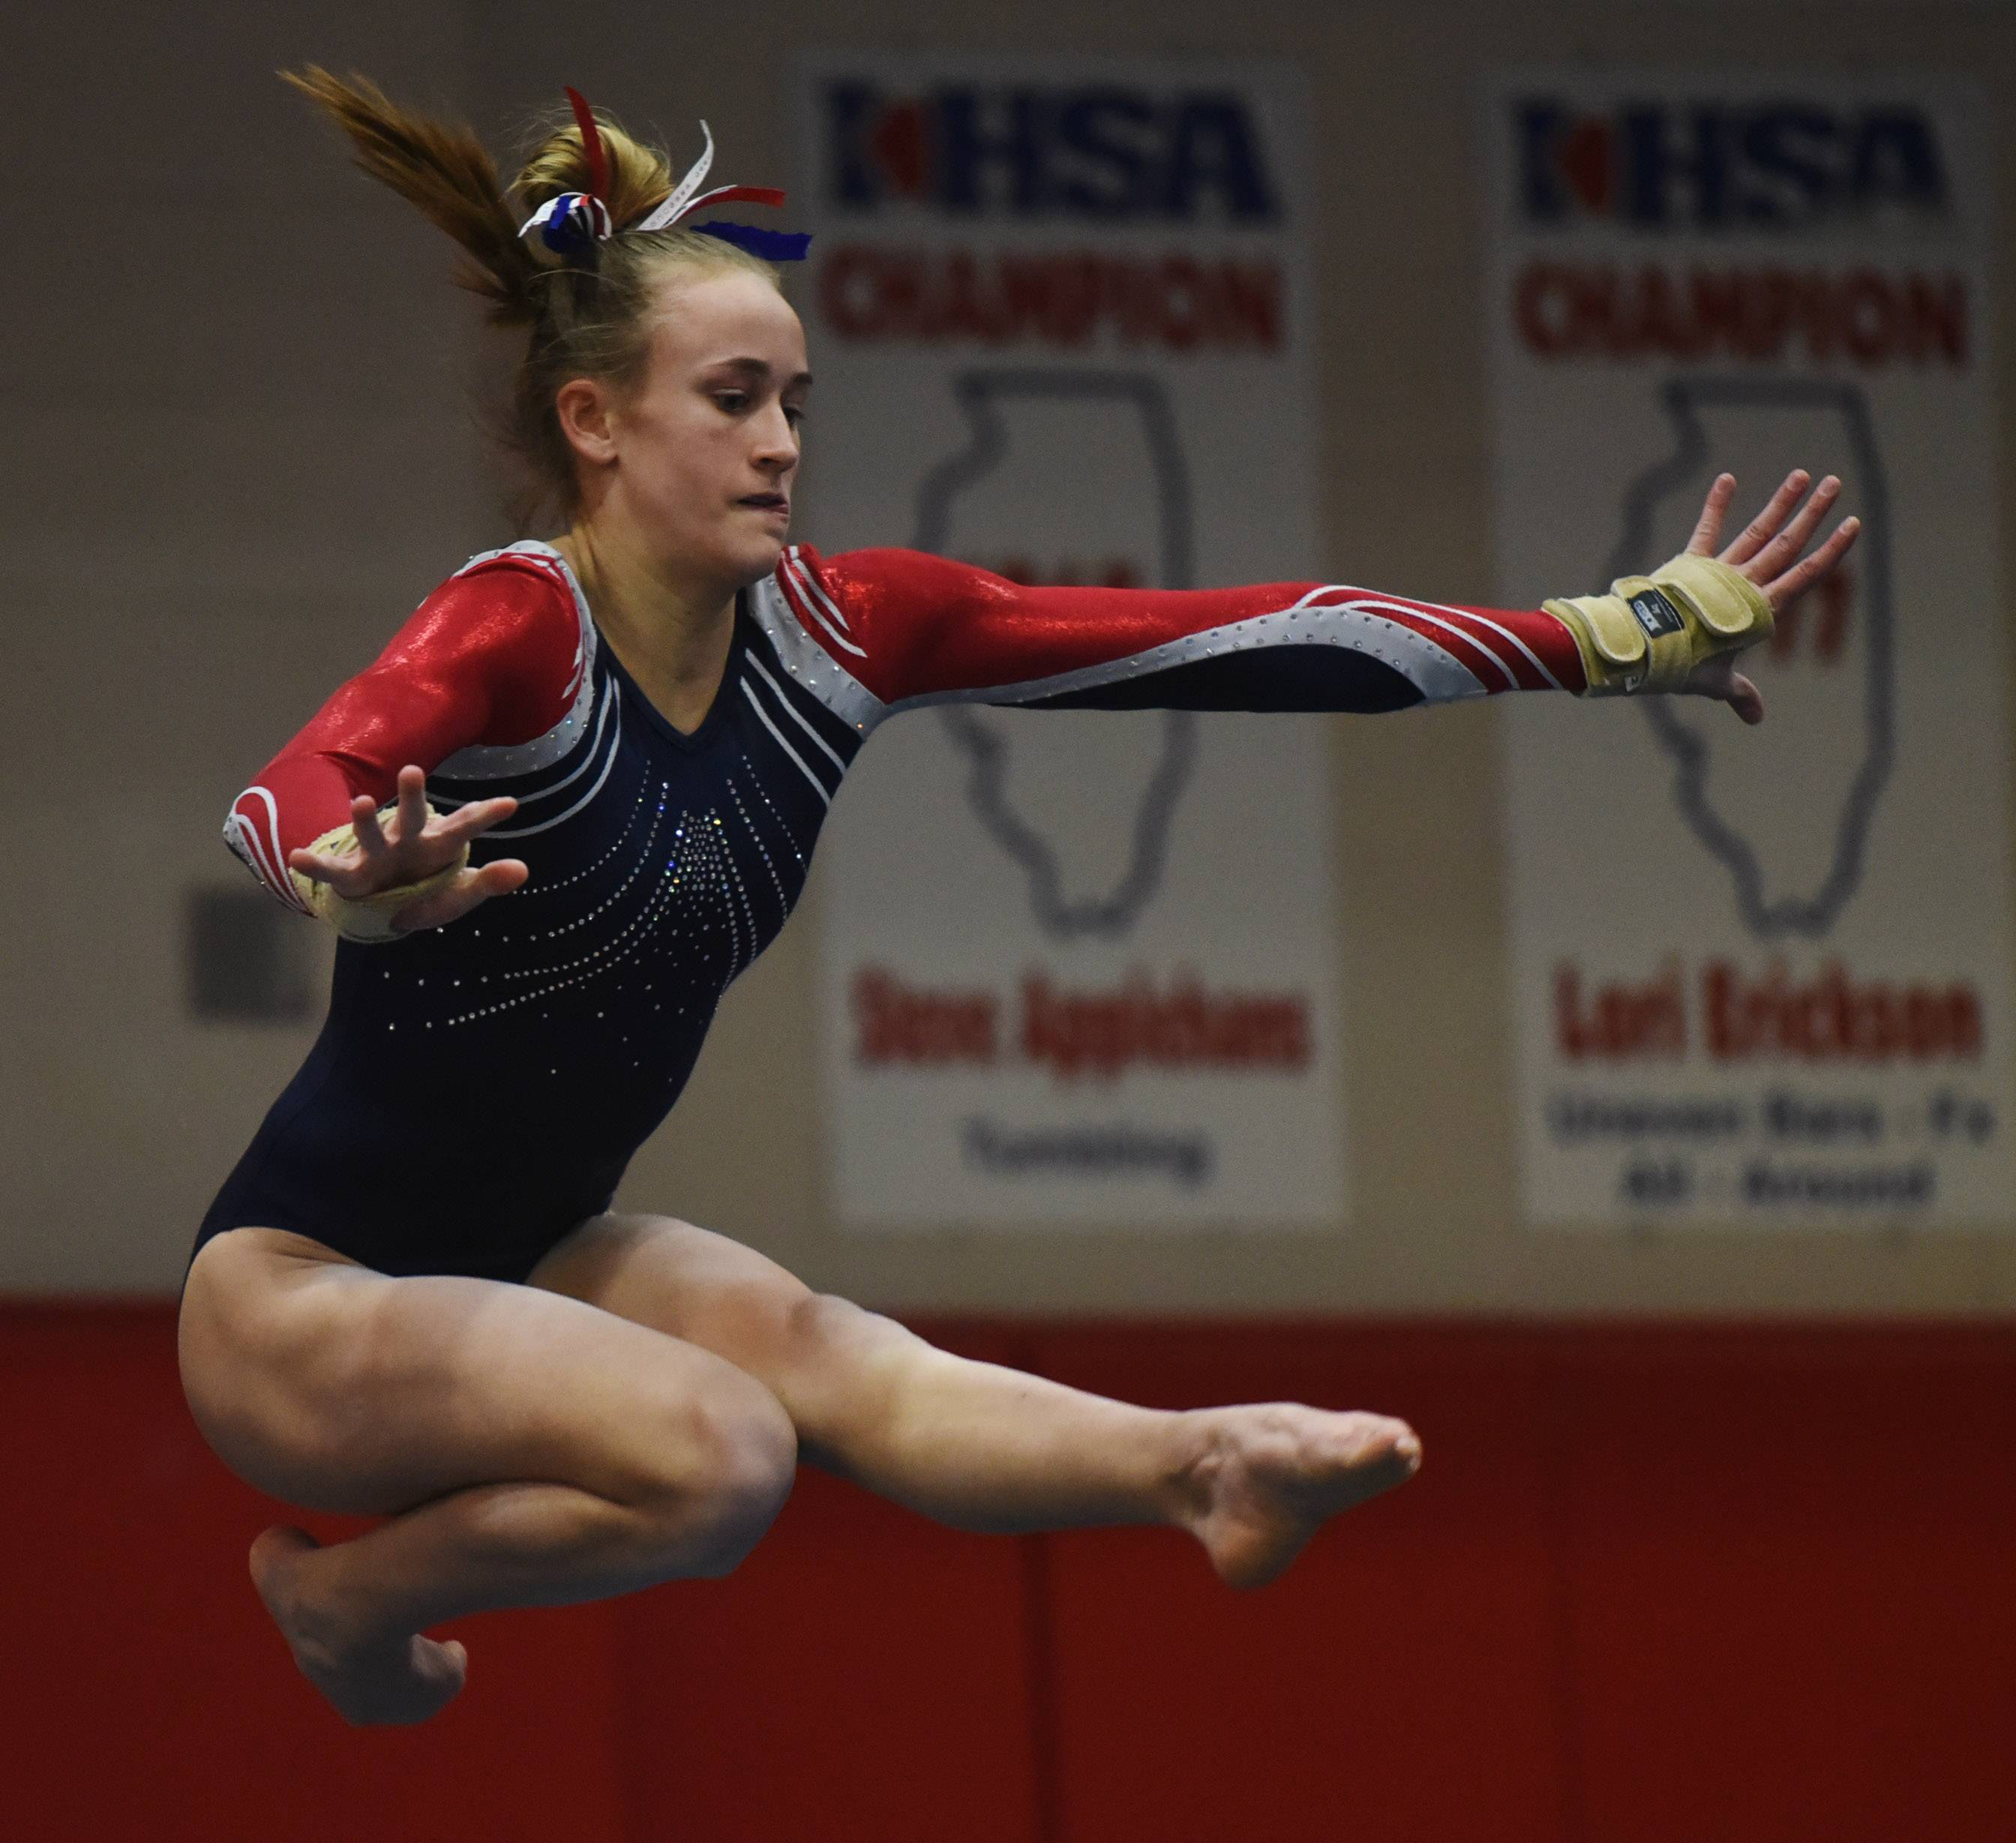 Conant's Danielle Smith competes on the floor exercise during the Palatine regional Wednesday.